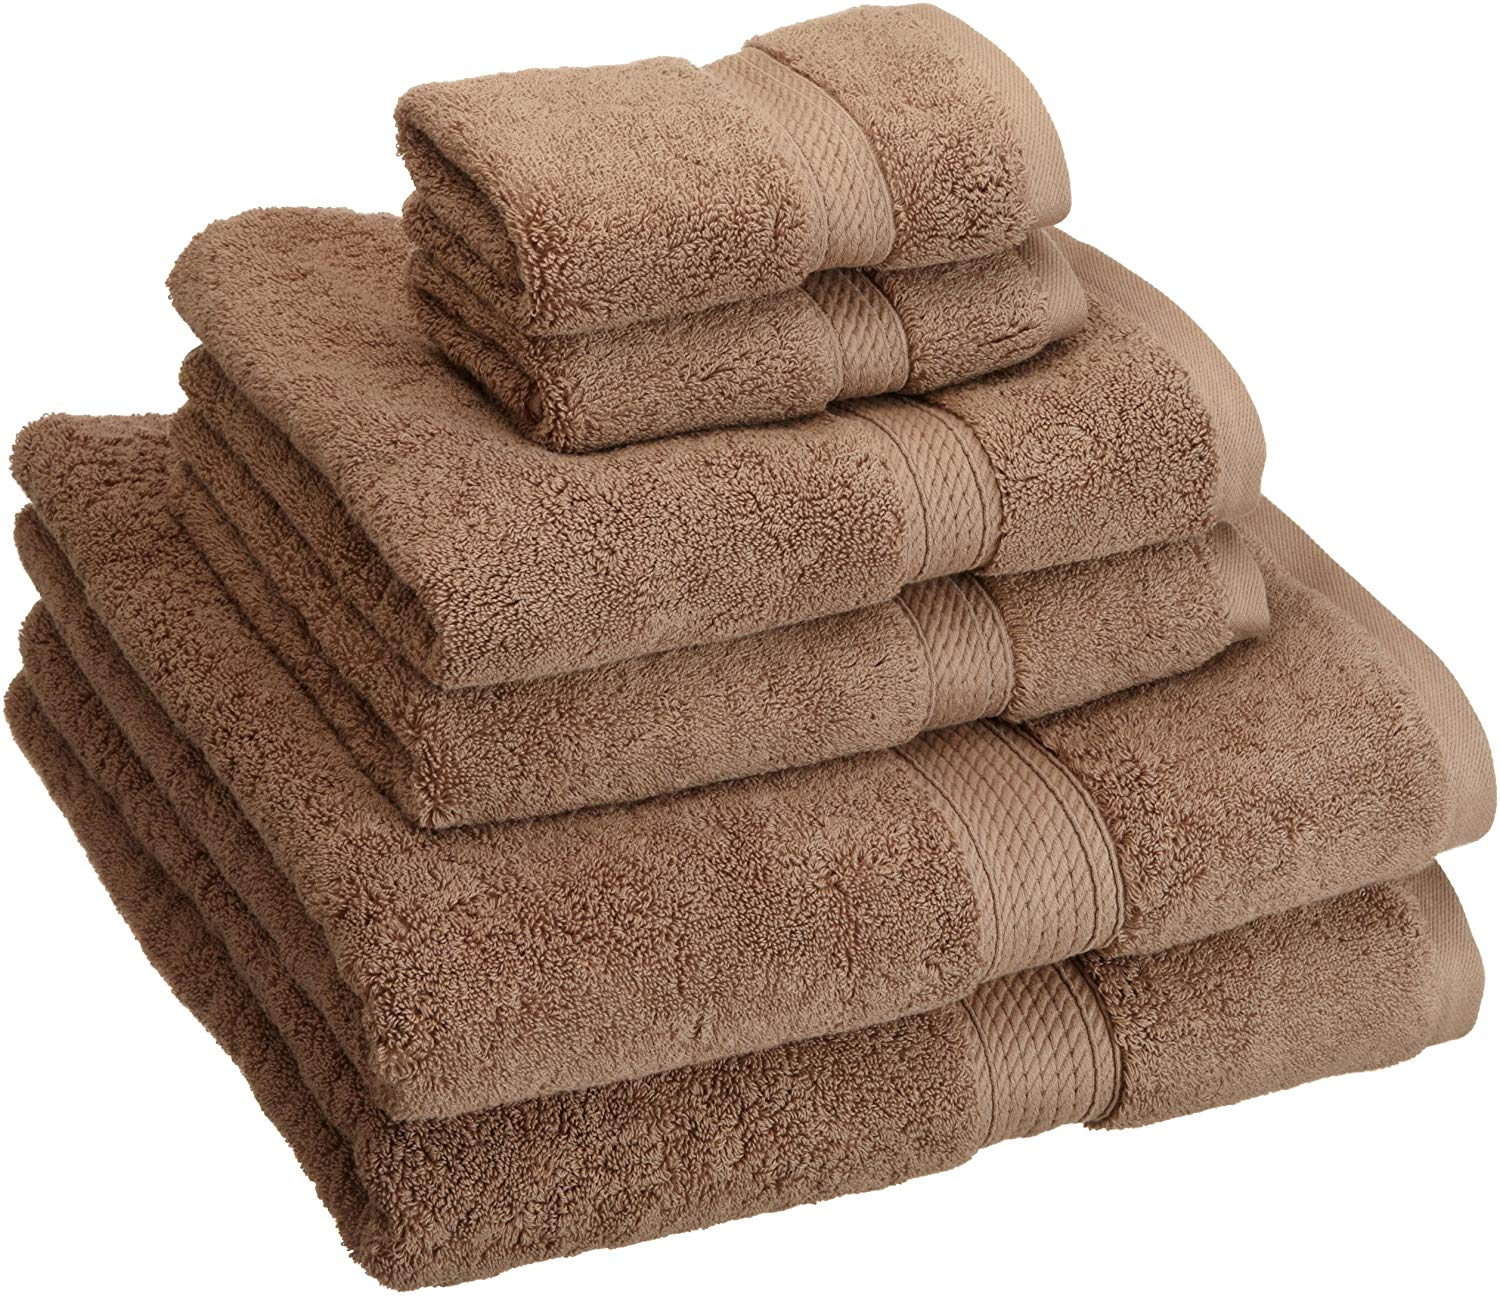 Top 10 Best Fieldcrest Towels in 2020 Reviews